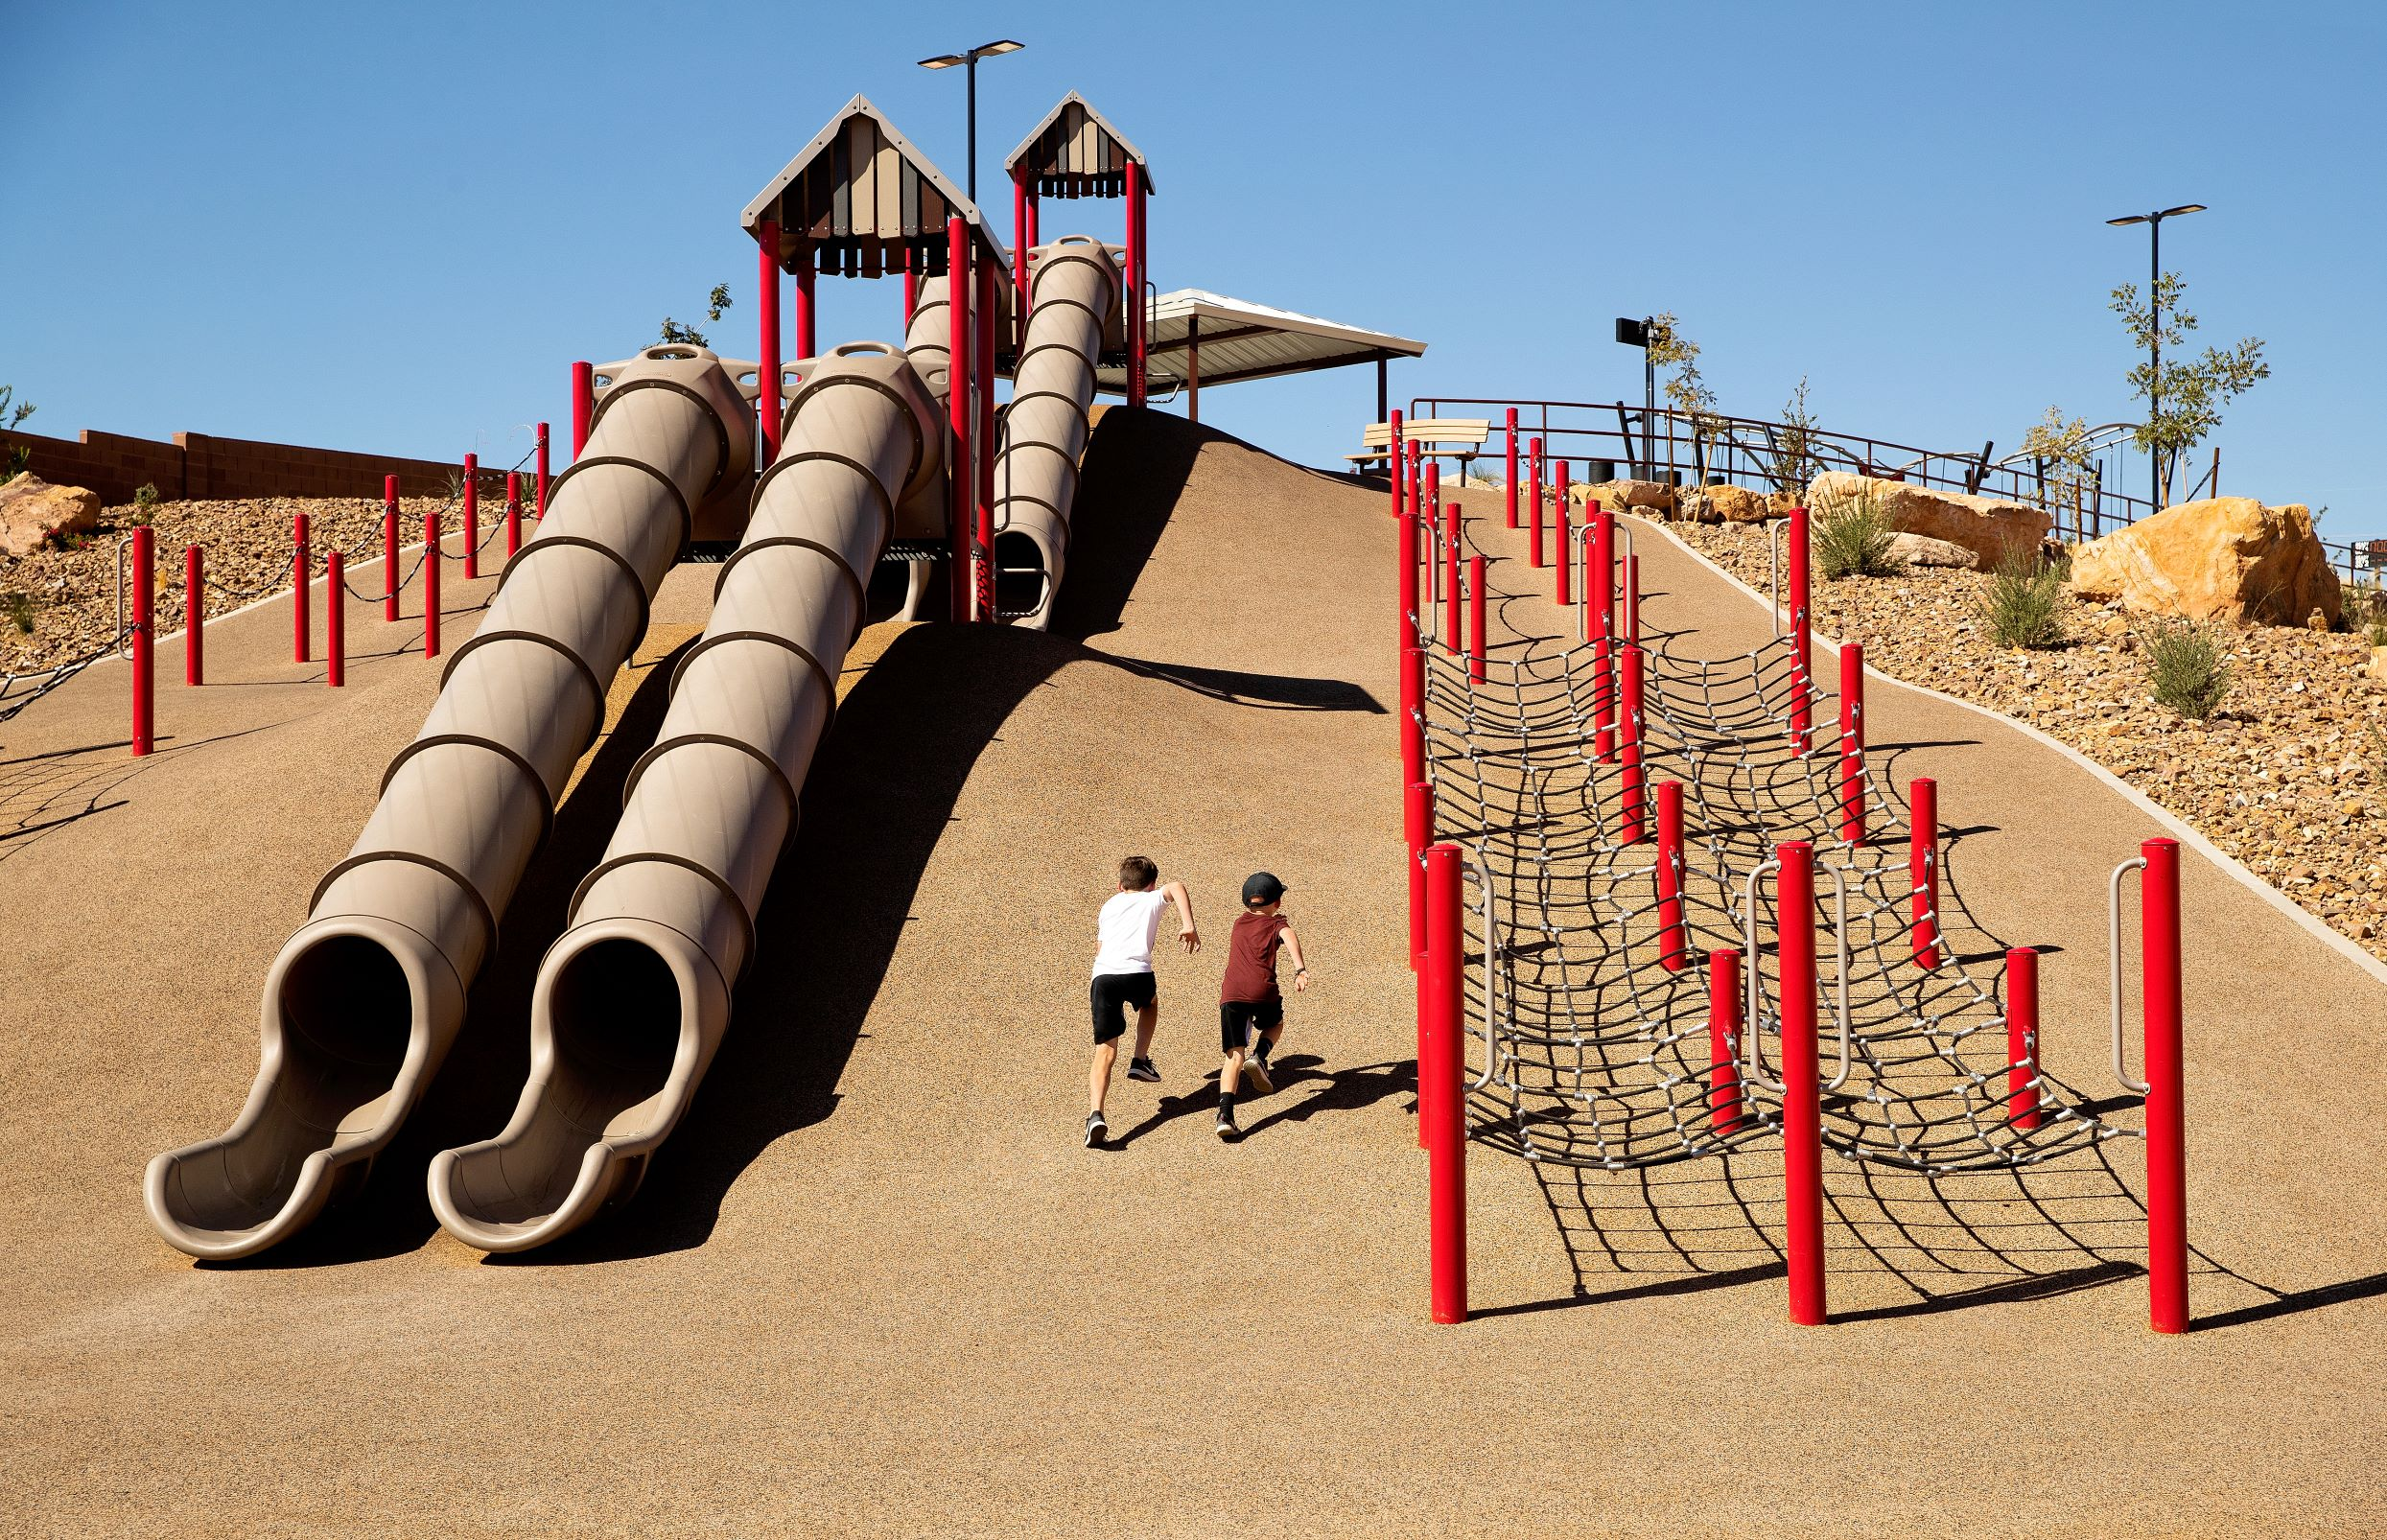 Playful Landscapes 101 : How To Use Topography in Play and Fitness Spaces?